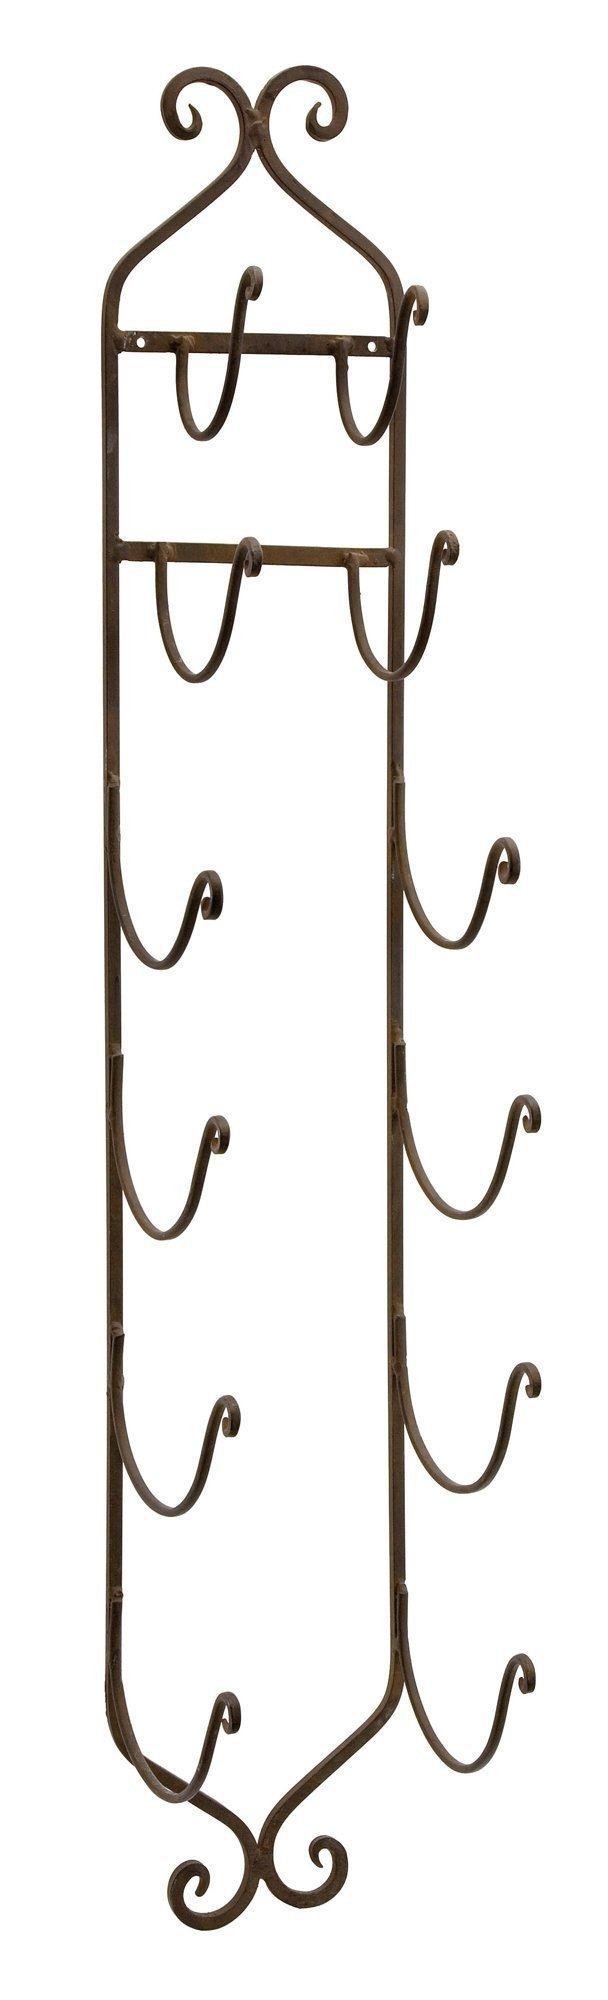 Imax 9748 Towel/Wine Rack in Dark Brown - Compact, Wall Mounted Metal Display Rack for Organizing Towels, Wine Bottles, Hats. Home Storage and Organizing